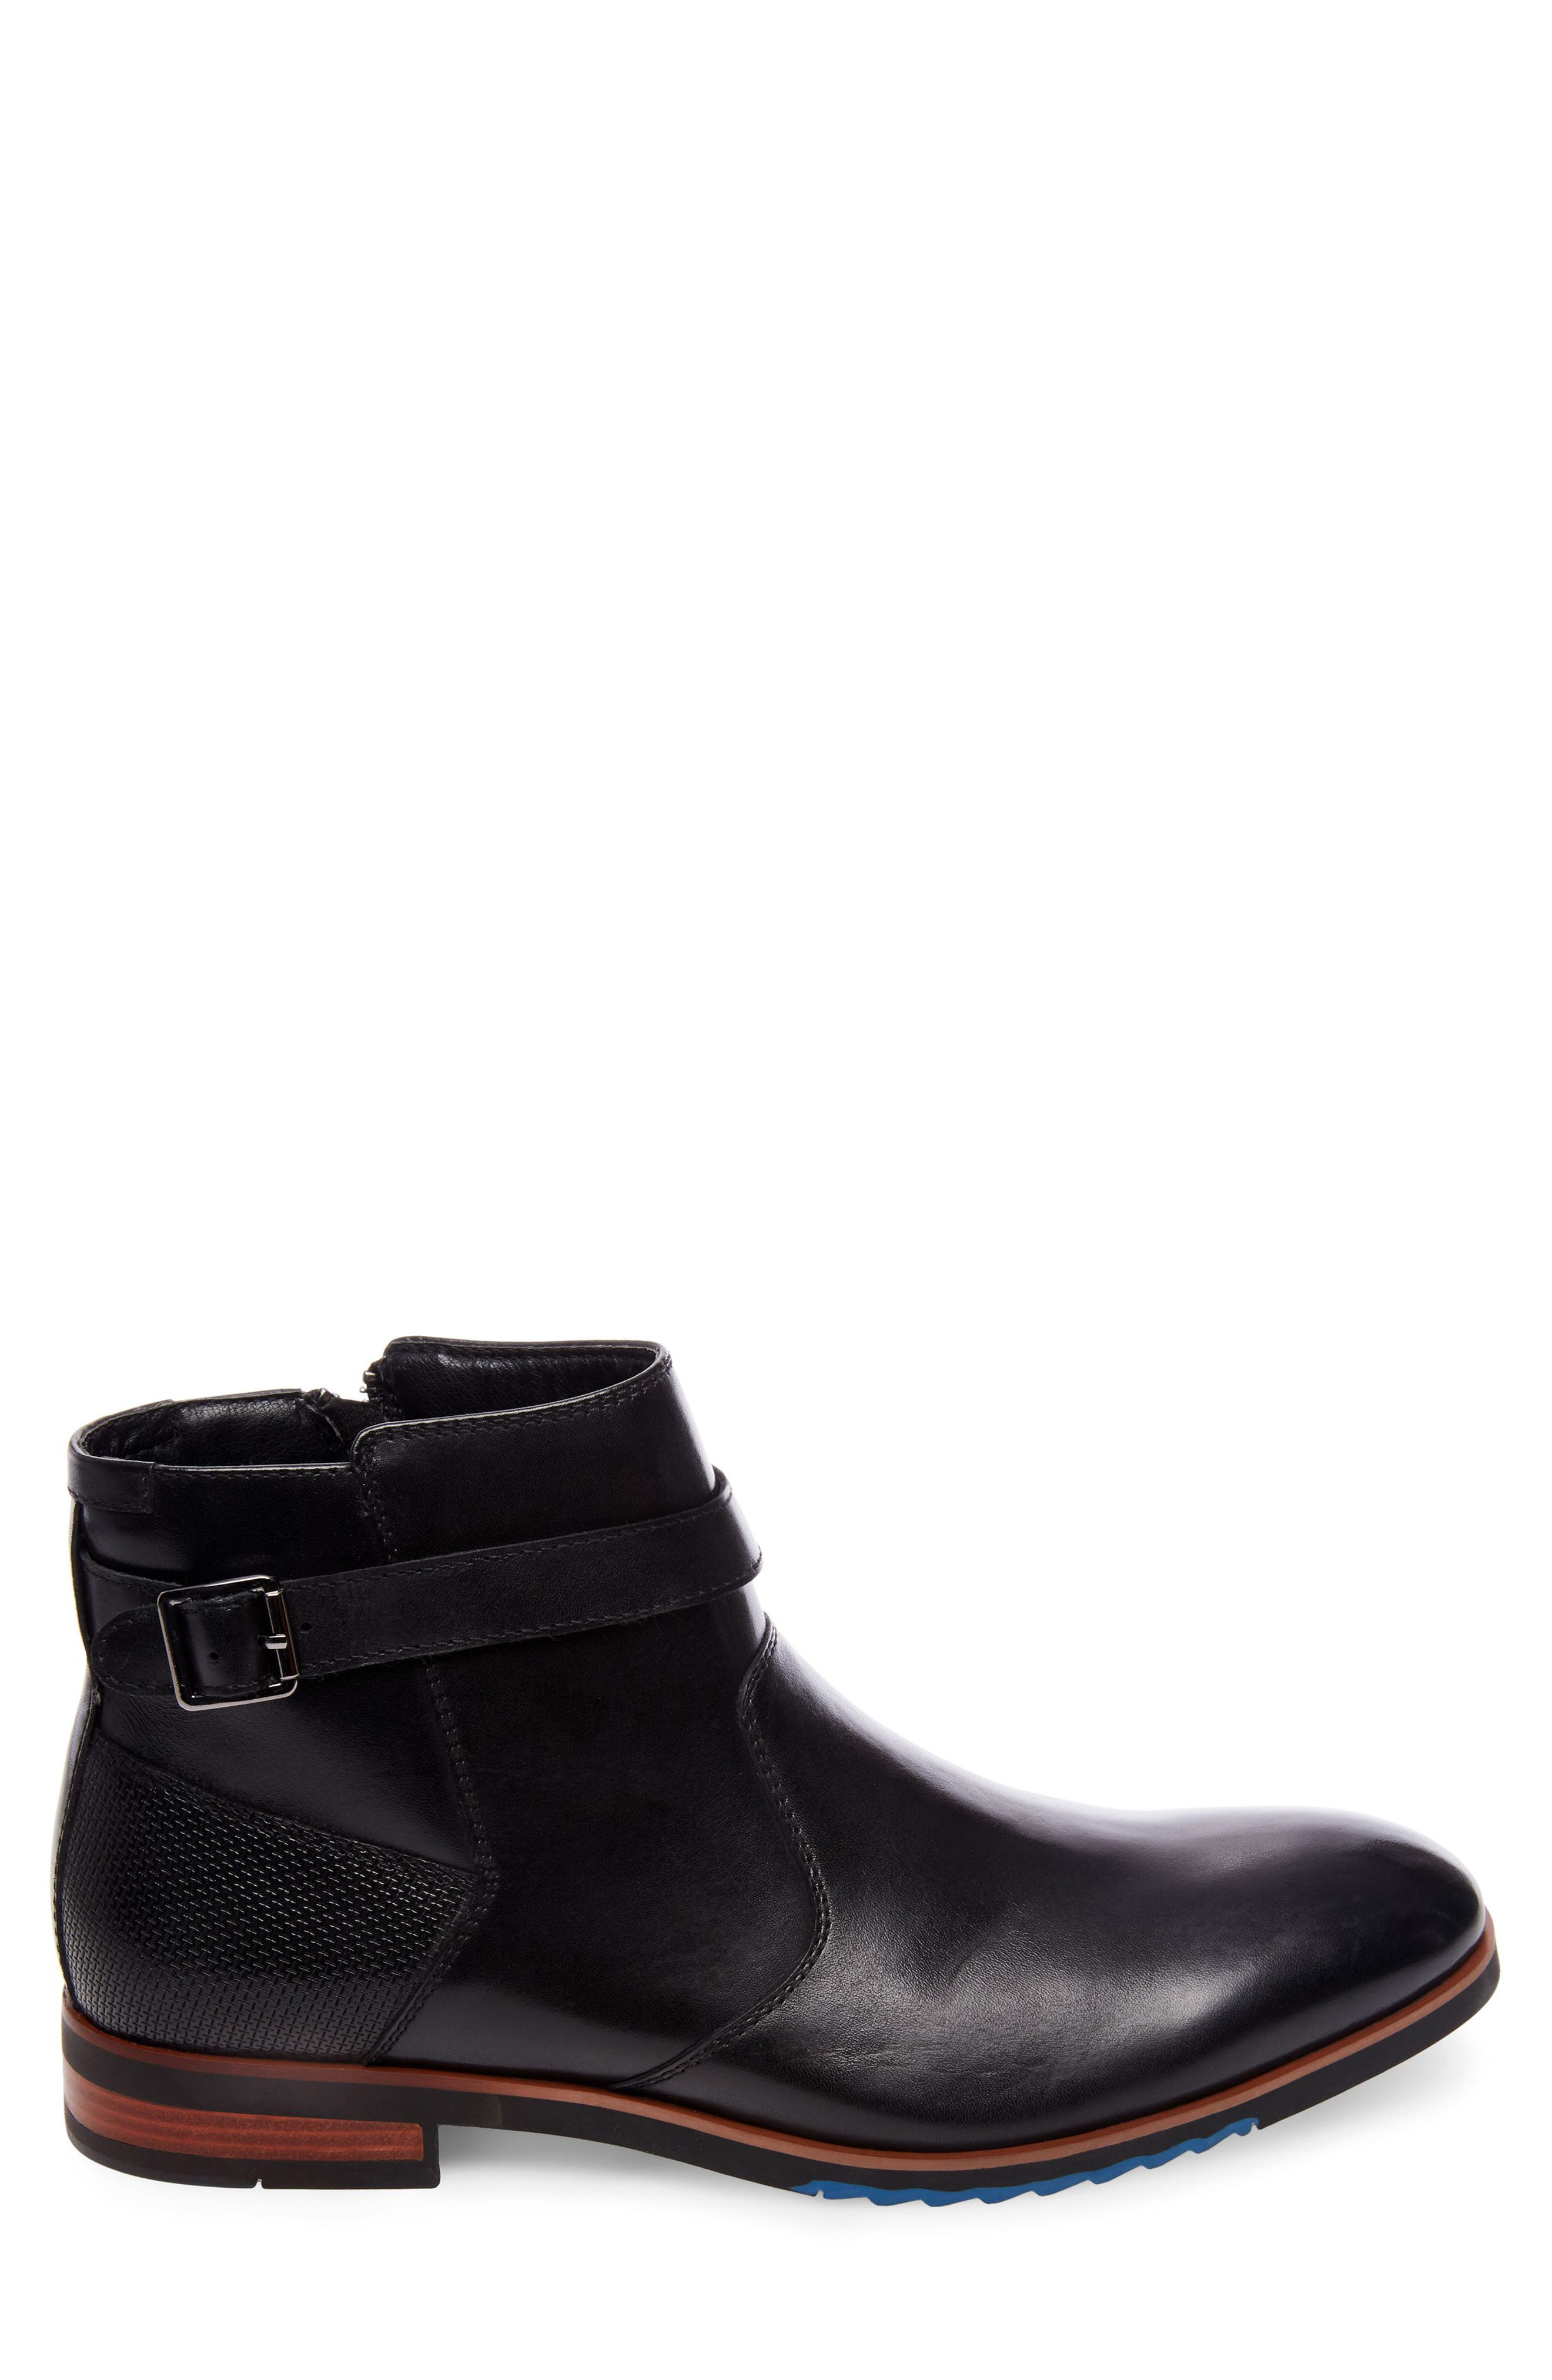 Levant Boot,                             Alternate thumbnail 3, color,                             Black Leather